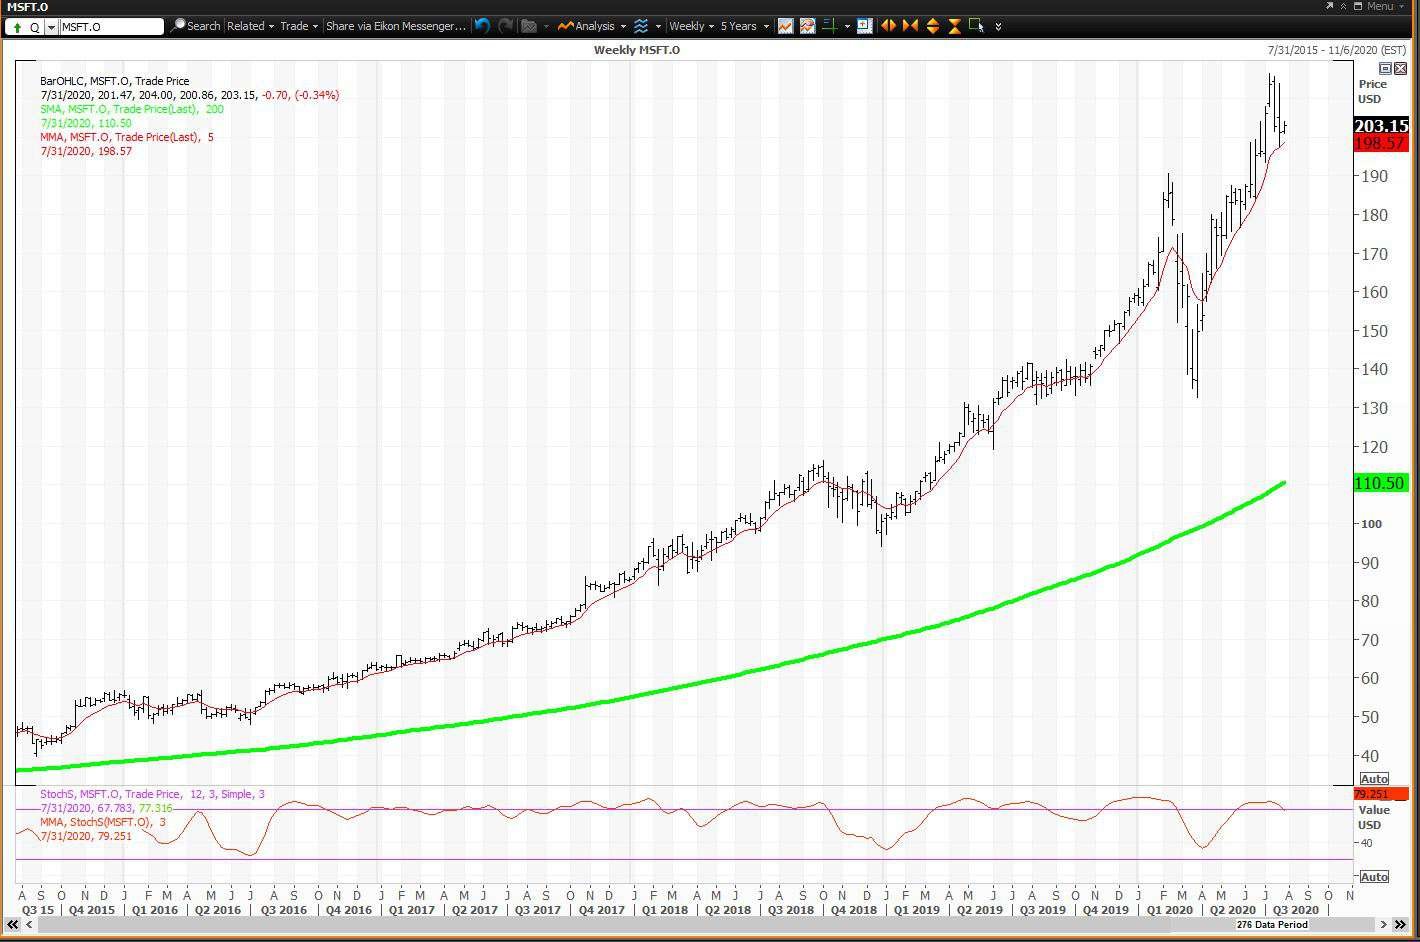 Weekly chart showing the share price performance of Microsoft Corporation (MSFT)